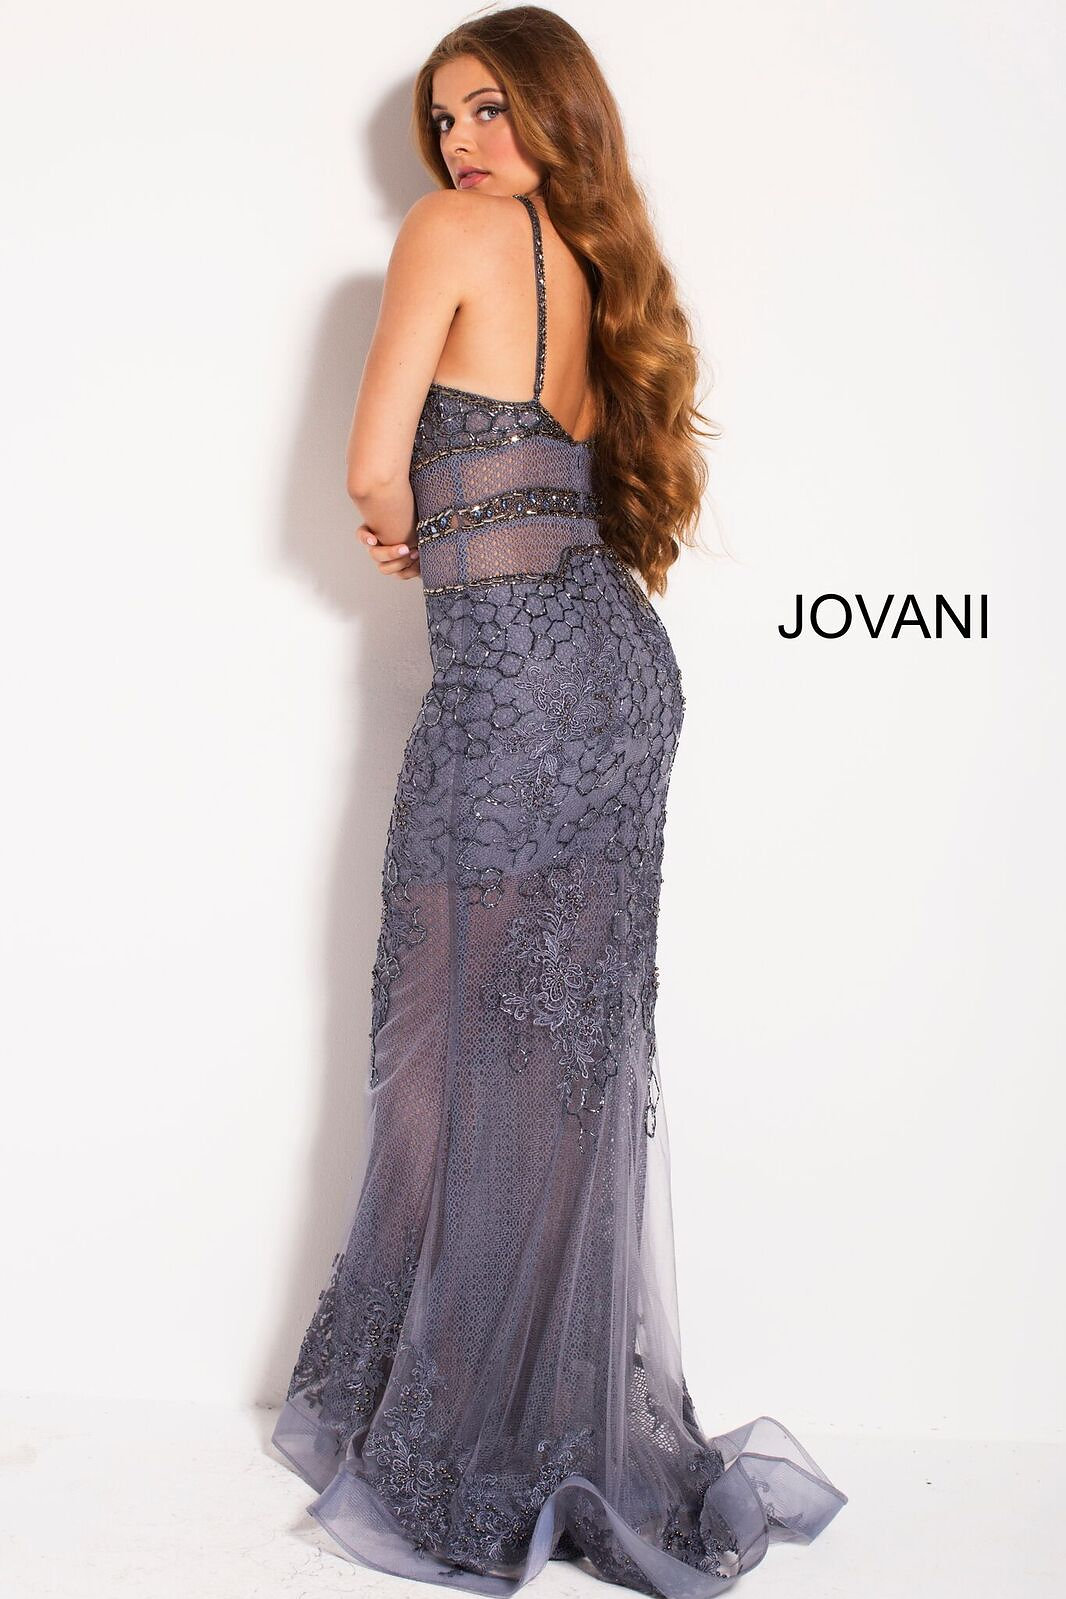 61e76073688 Jovani Applique Illusion Formal Dress - Gomes Weine AG